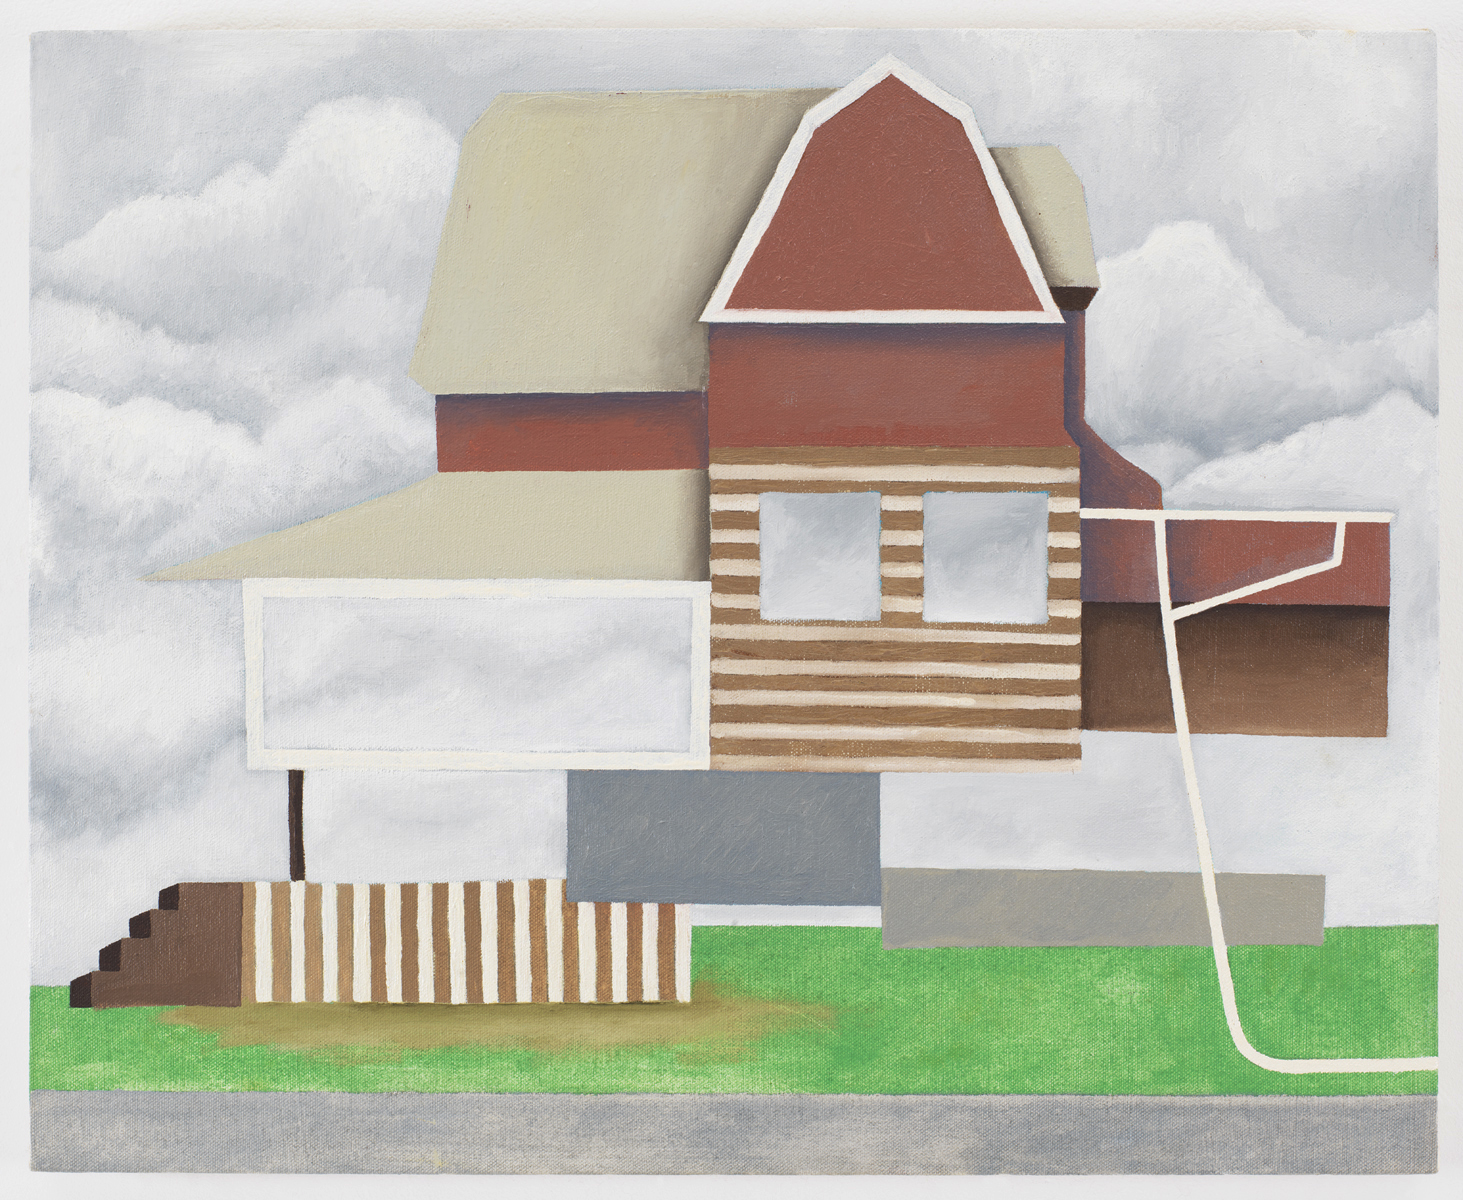 Morse, 2005, Oil on canvas, 18 x 22 inches